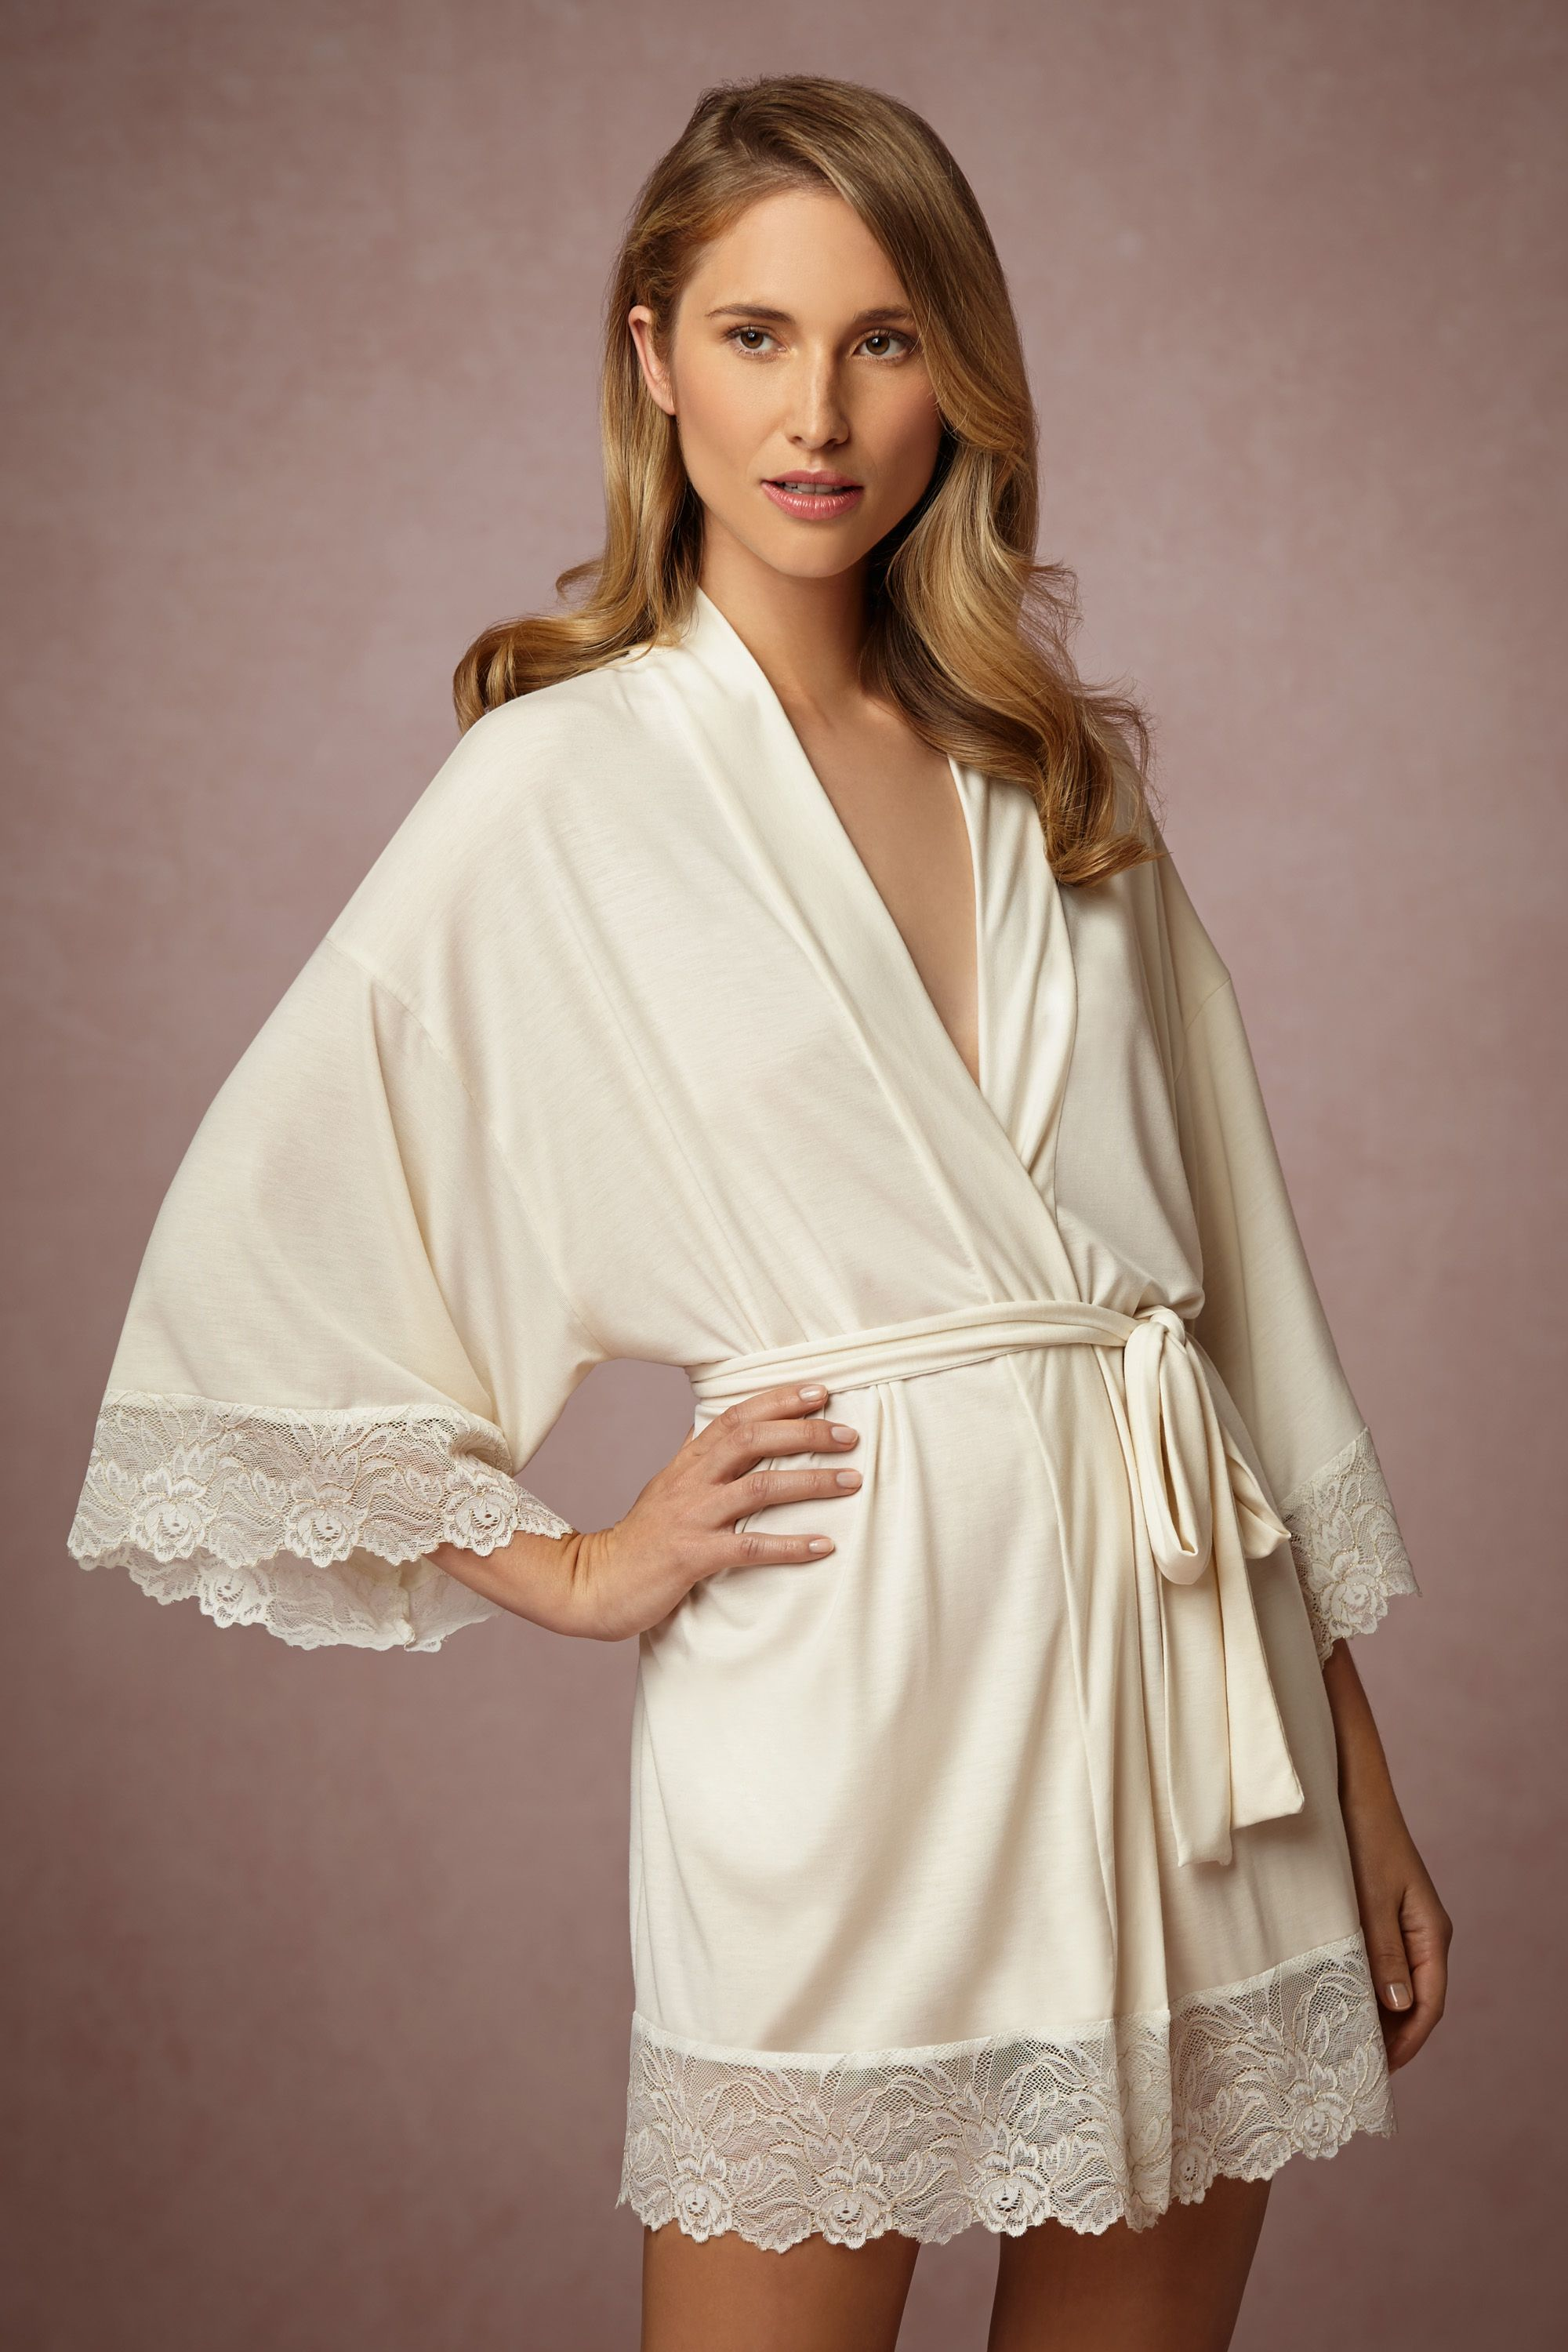 Wedding Bride Robe bride wedding robes bhldn venezia robe robe